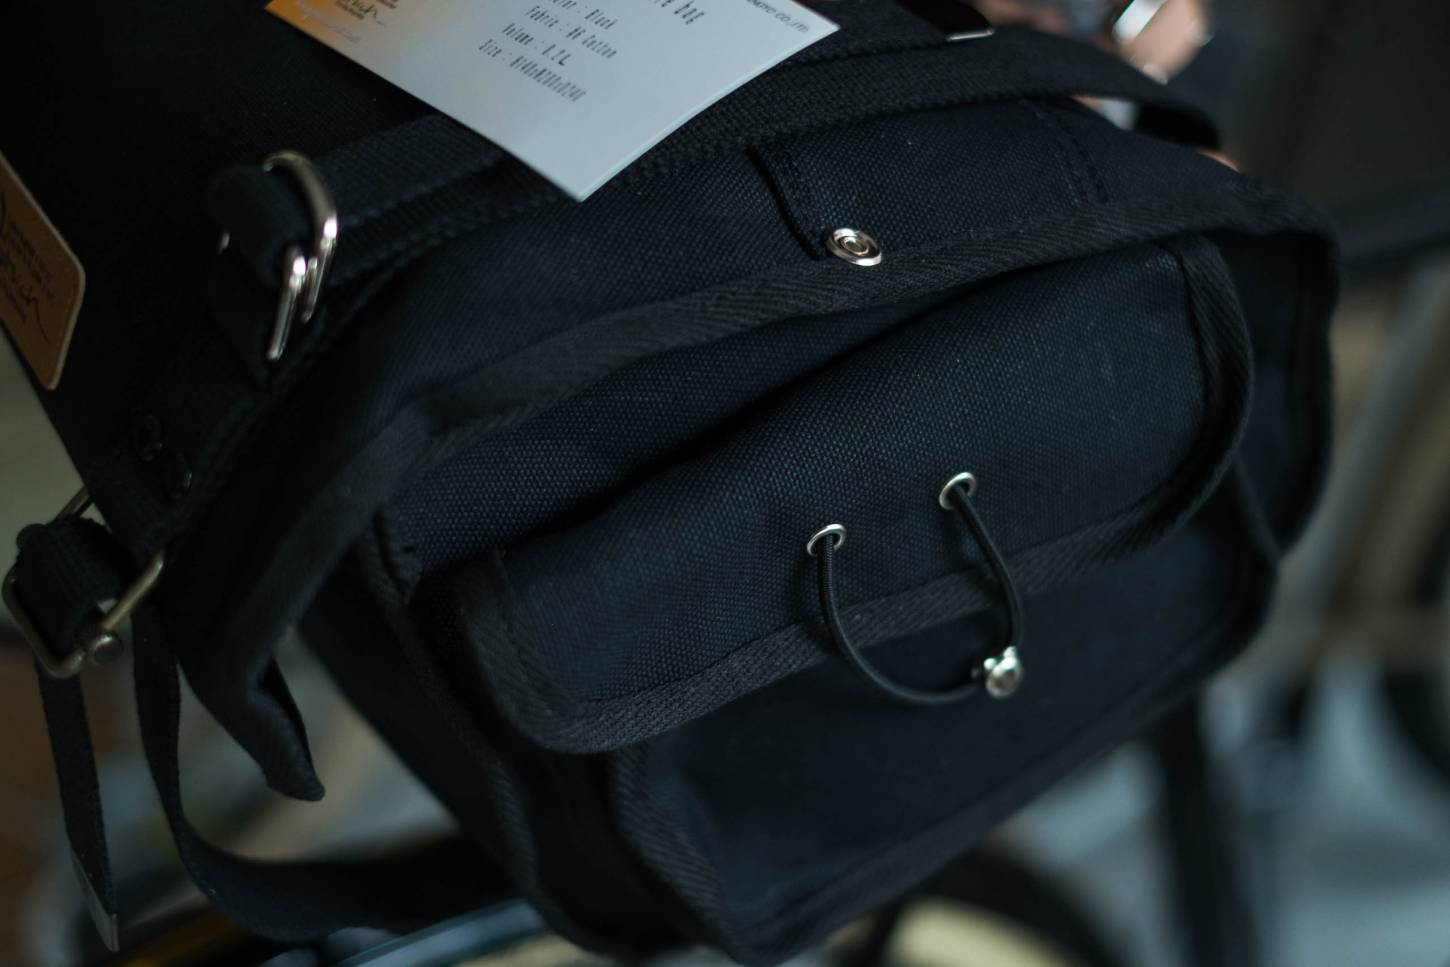 OSTRICH Saddle Bag S-2 saddle bag black